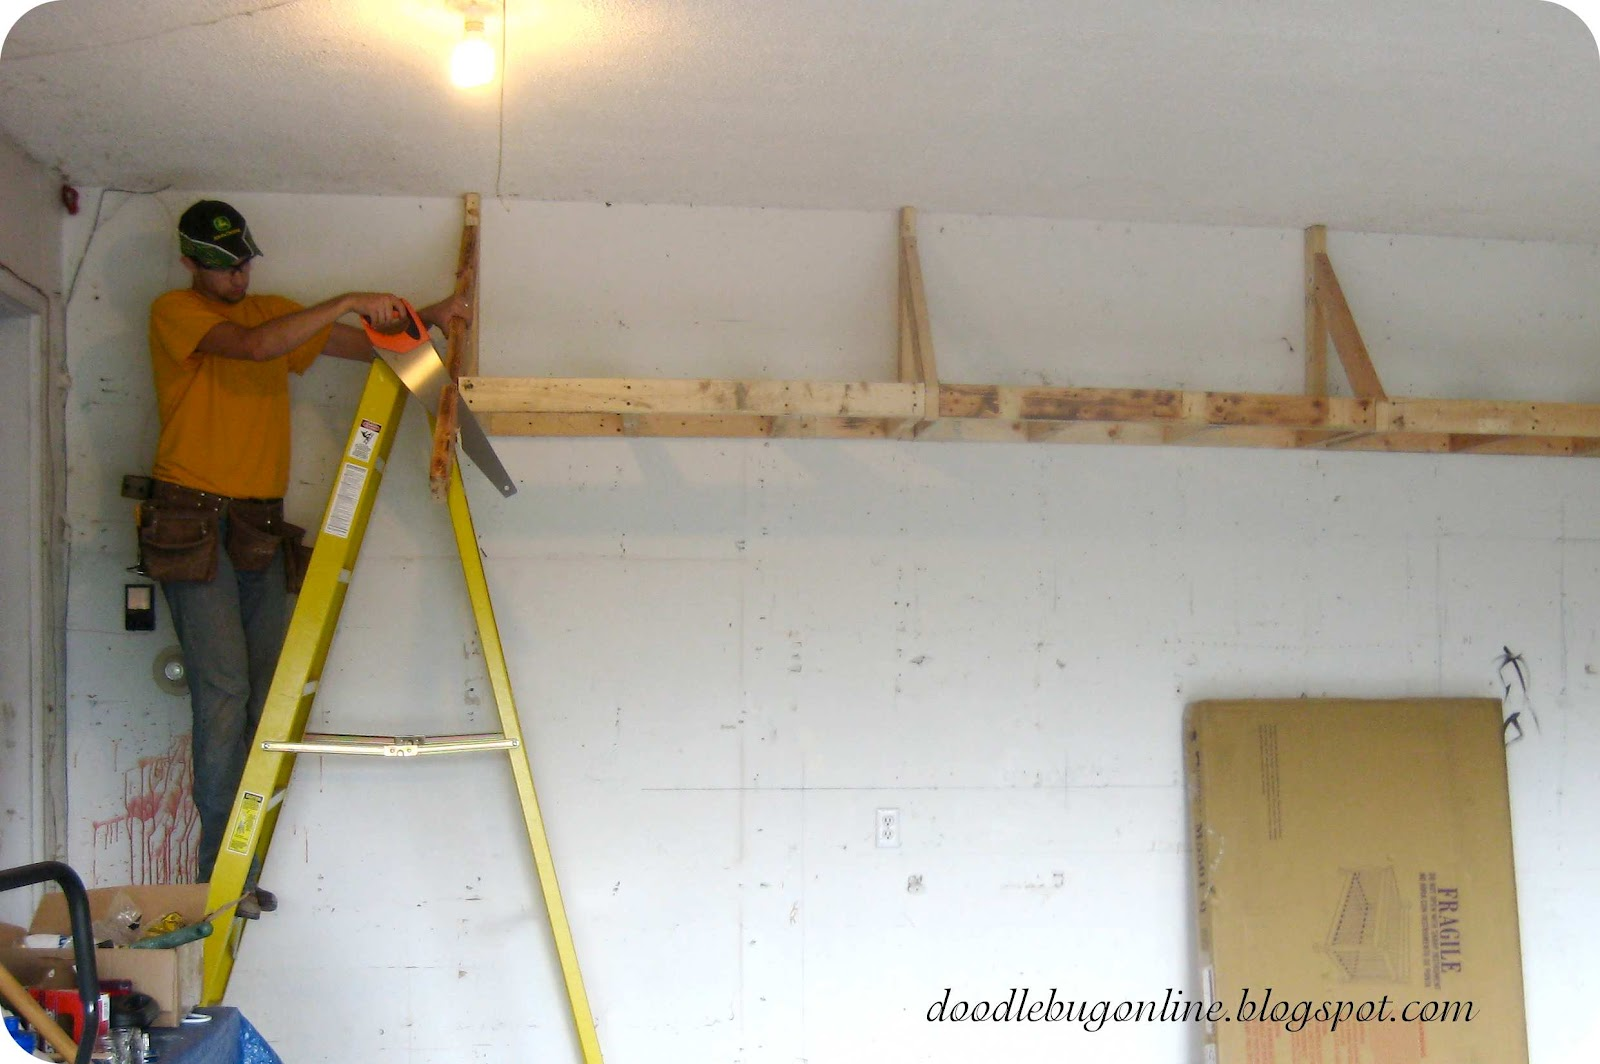 Higher Wall Shelves for occasional-use storage [Archive] - The ...